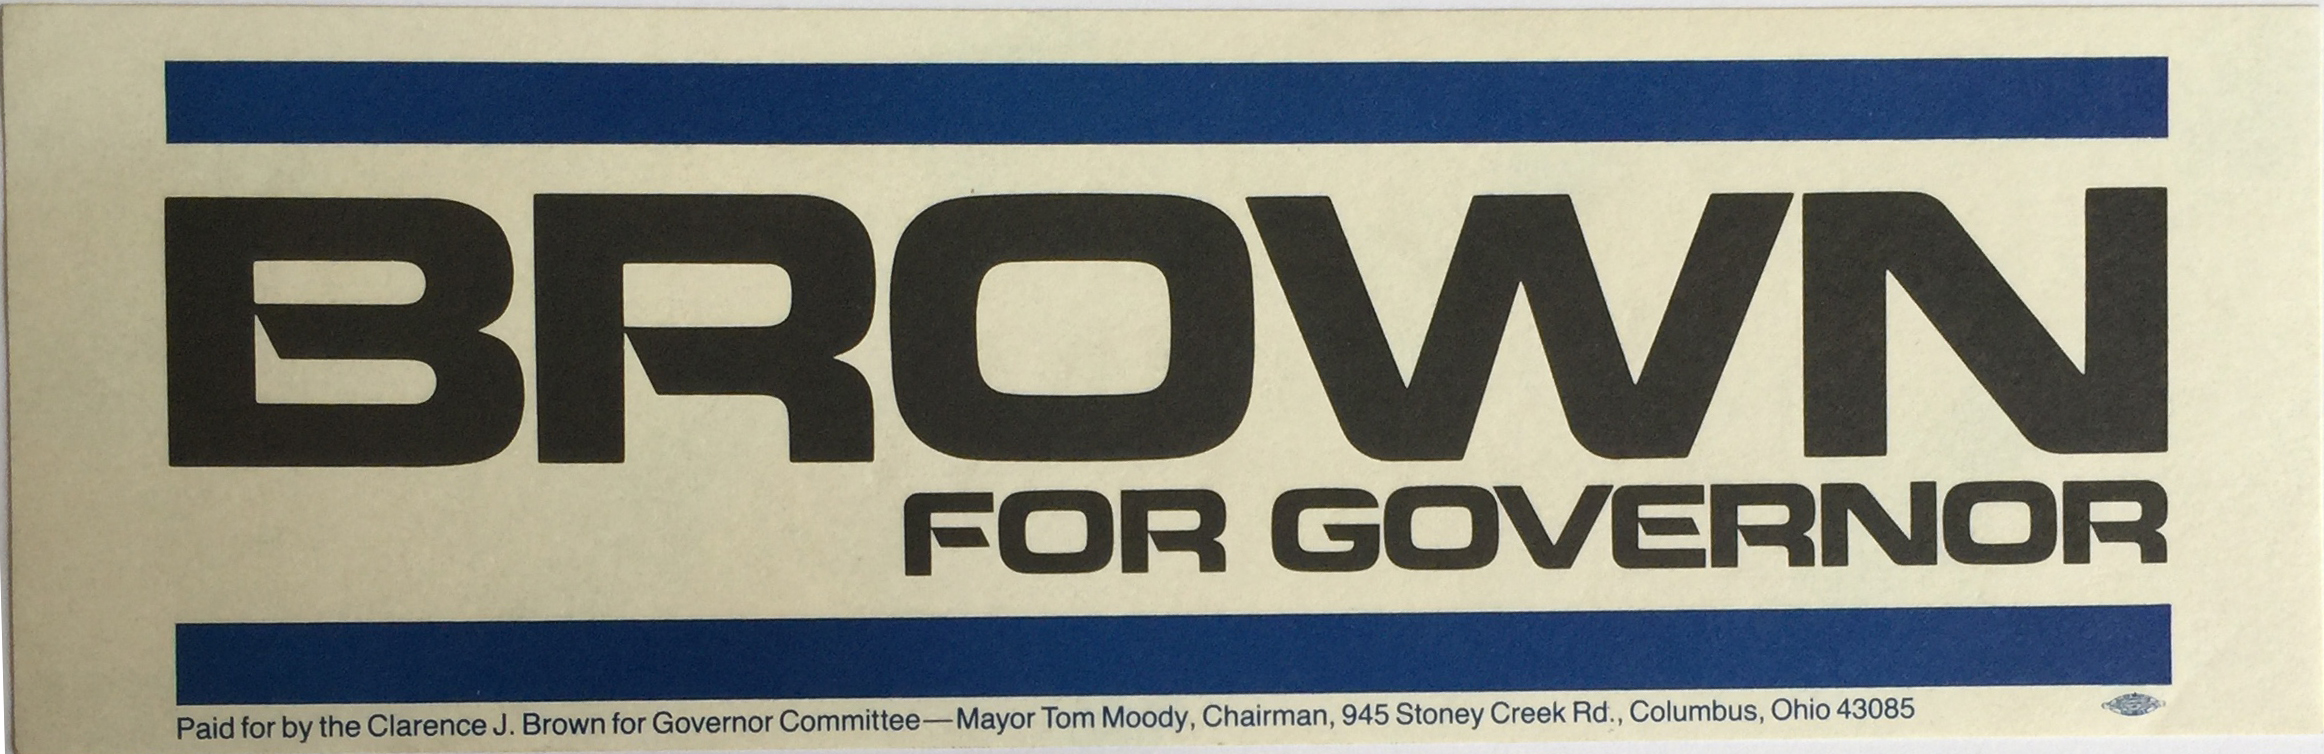 Sticker-gov1982 BROWNC 1.jpg